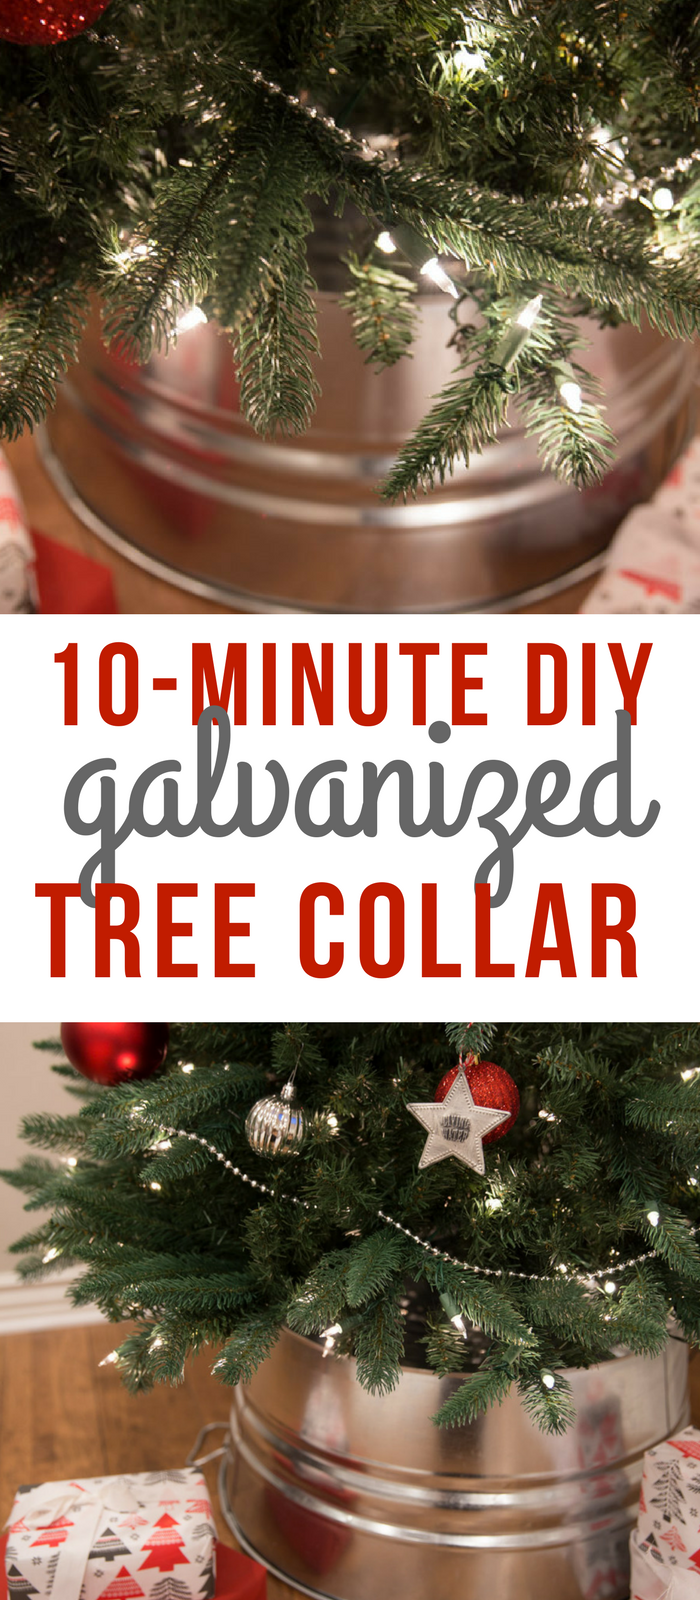 Galvanized Tree Collar In 10 Minutes Step By Step Tutorial